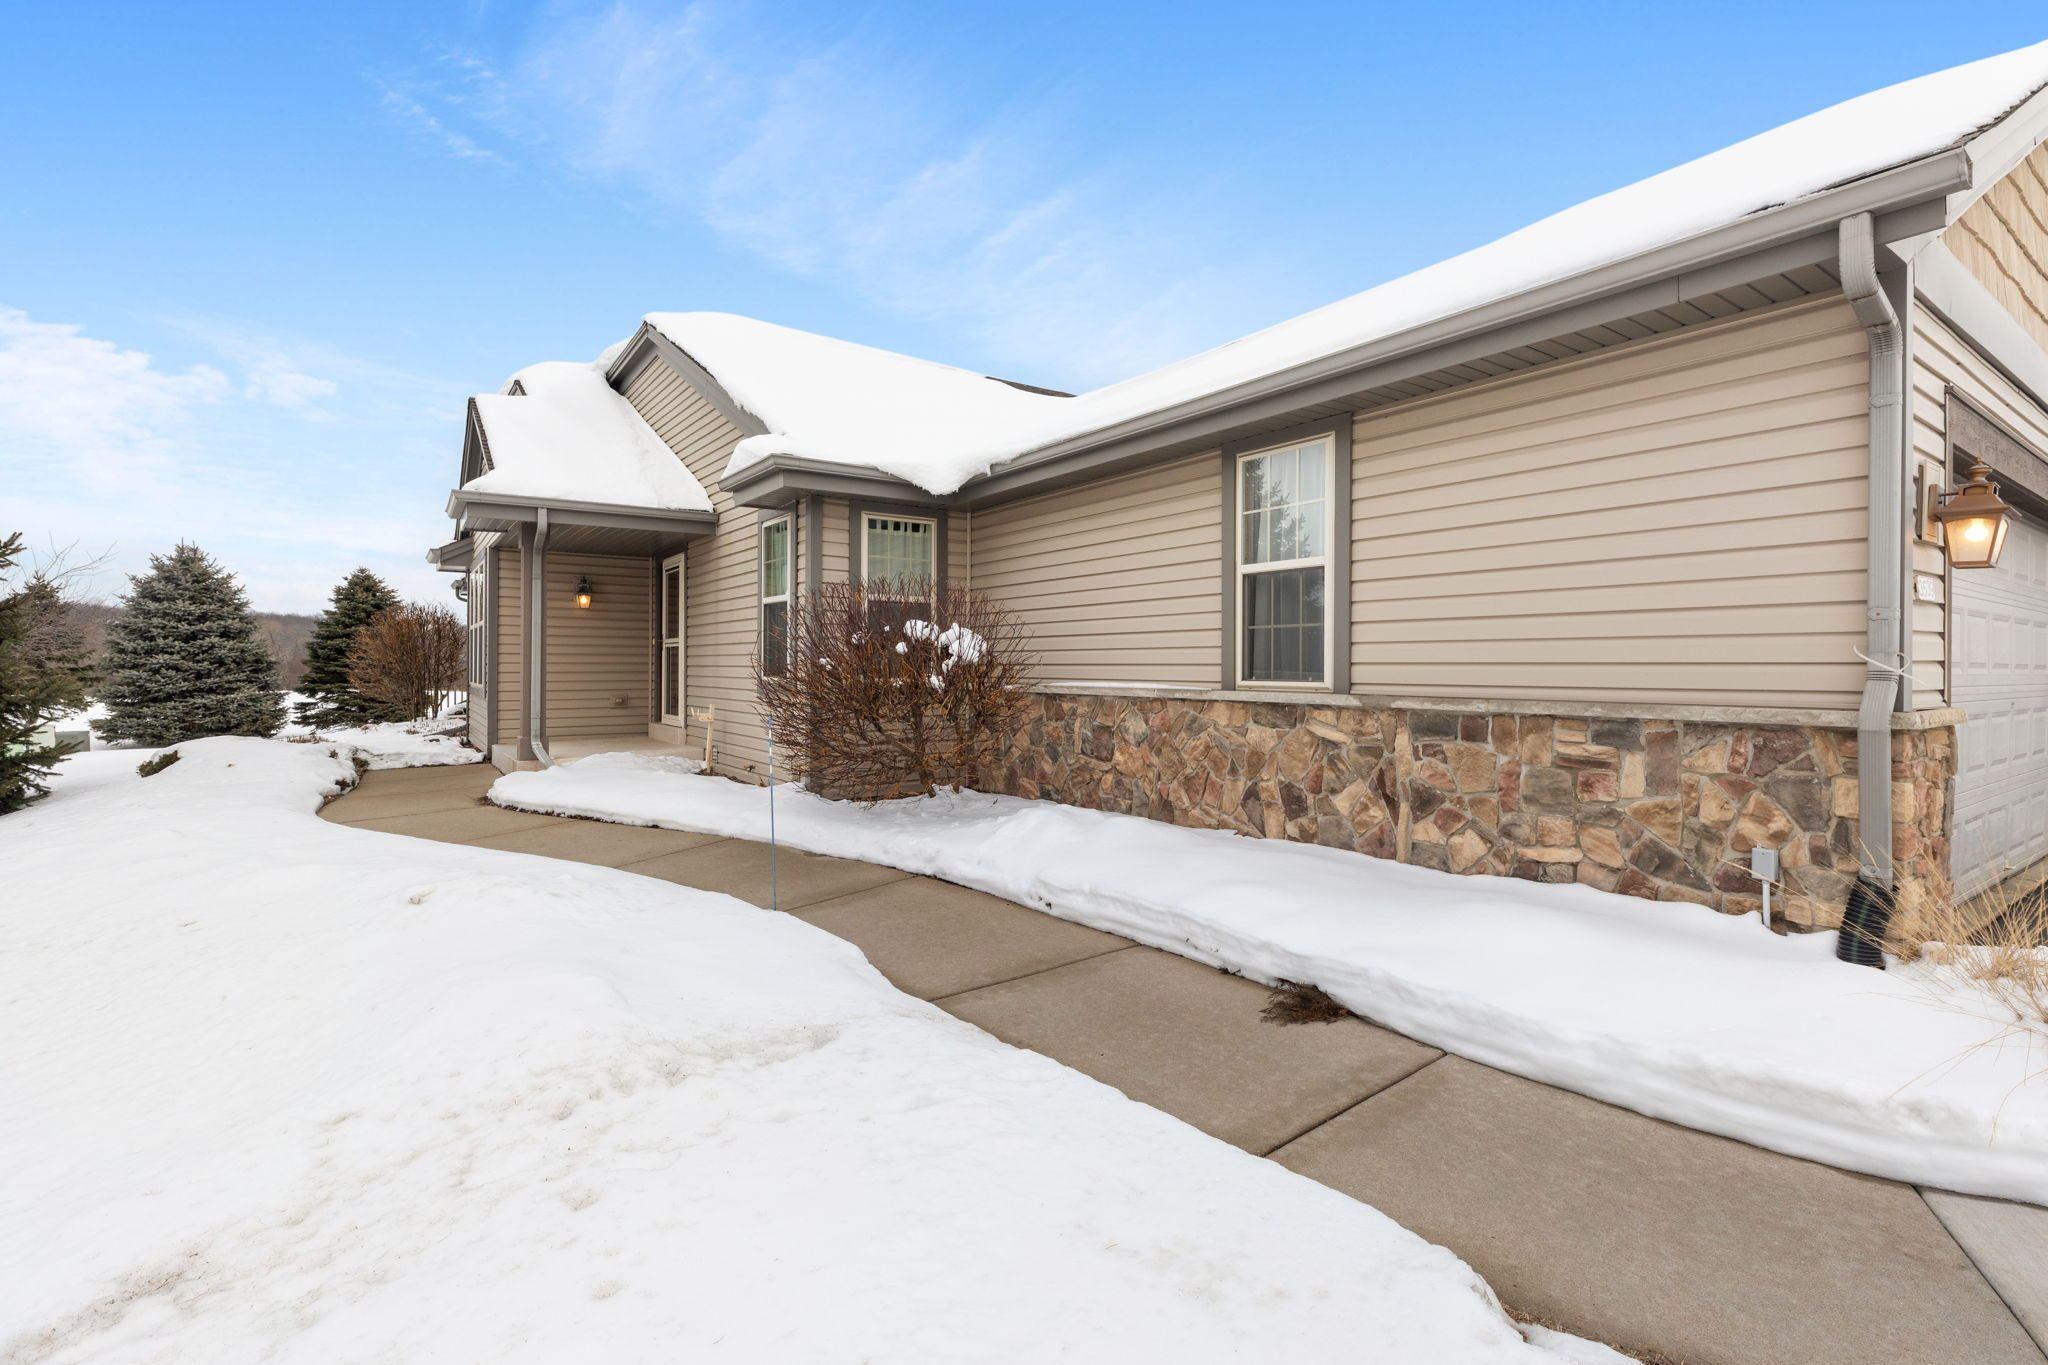 3539 River Valley Rd, Waukesha, Wisconsin 53189, 3 Bedrooms Bedrooms, ,2 BathroomsBathrooms,Condominiums,For Sale,River Valley Rd,1,1724066